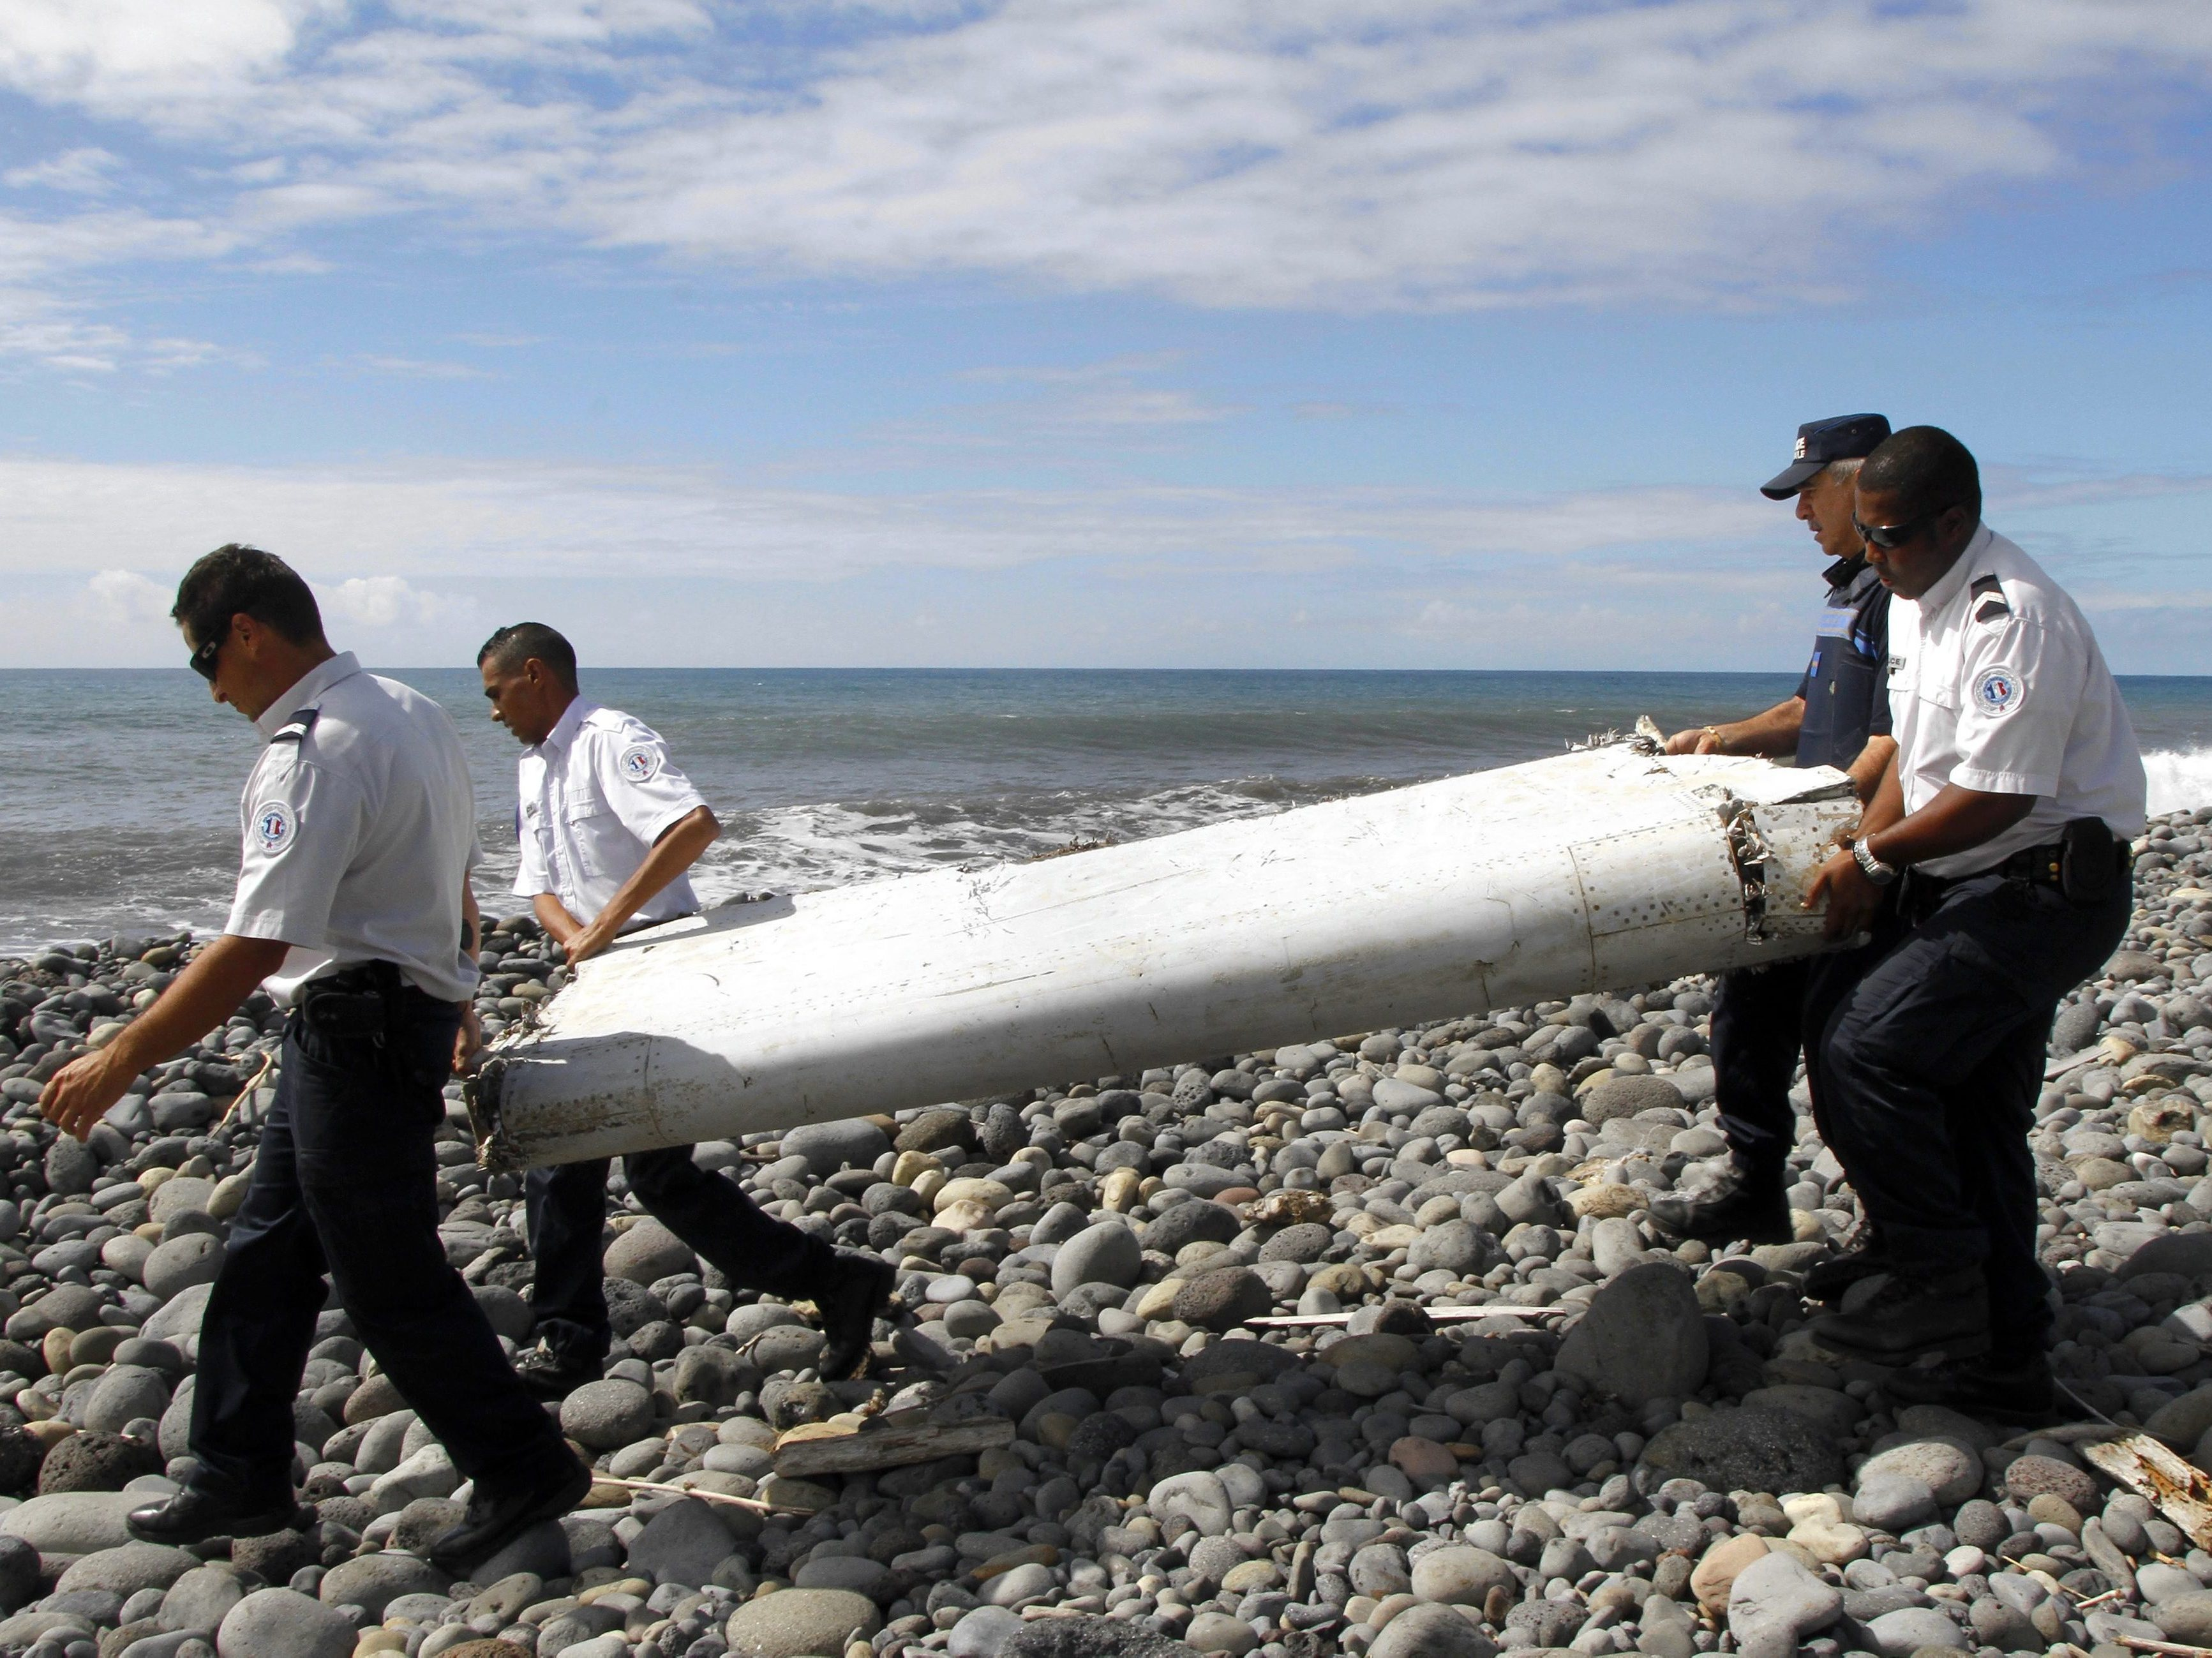 Australian MH370 report says plane descended rapidly, indicating no pilot